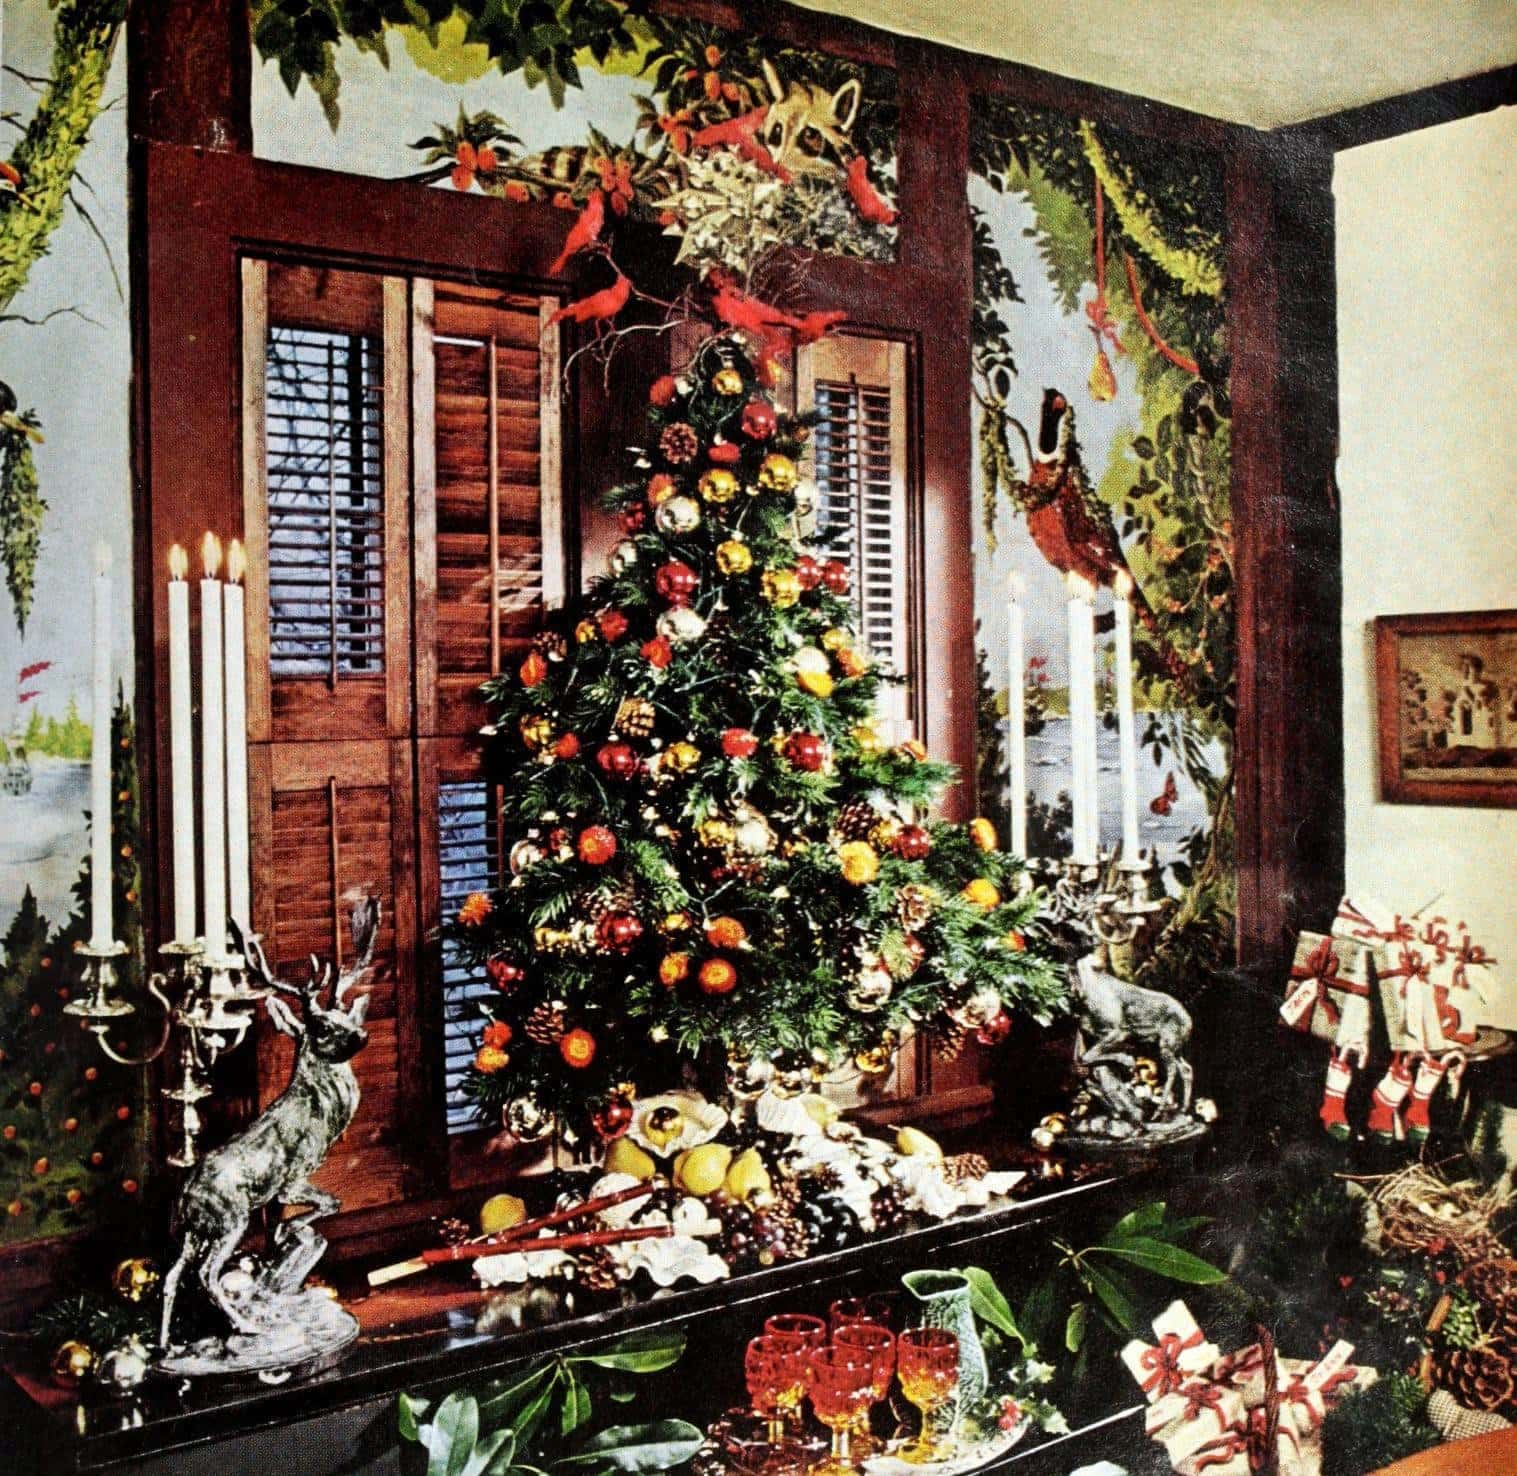 Vintage Christmas tree decorations from 1977 (1)